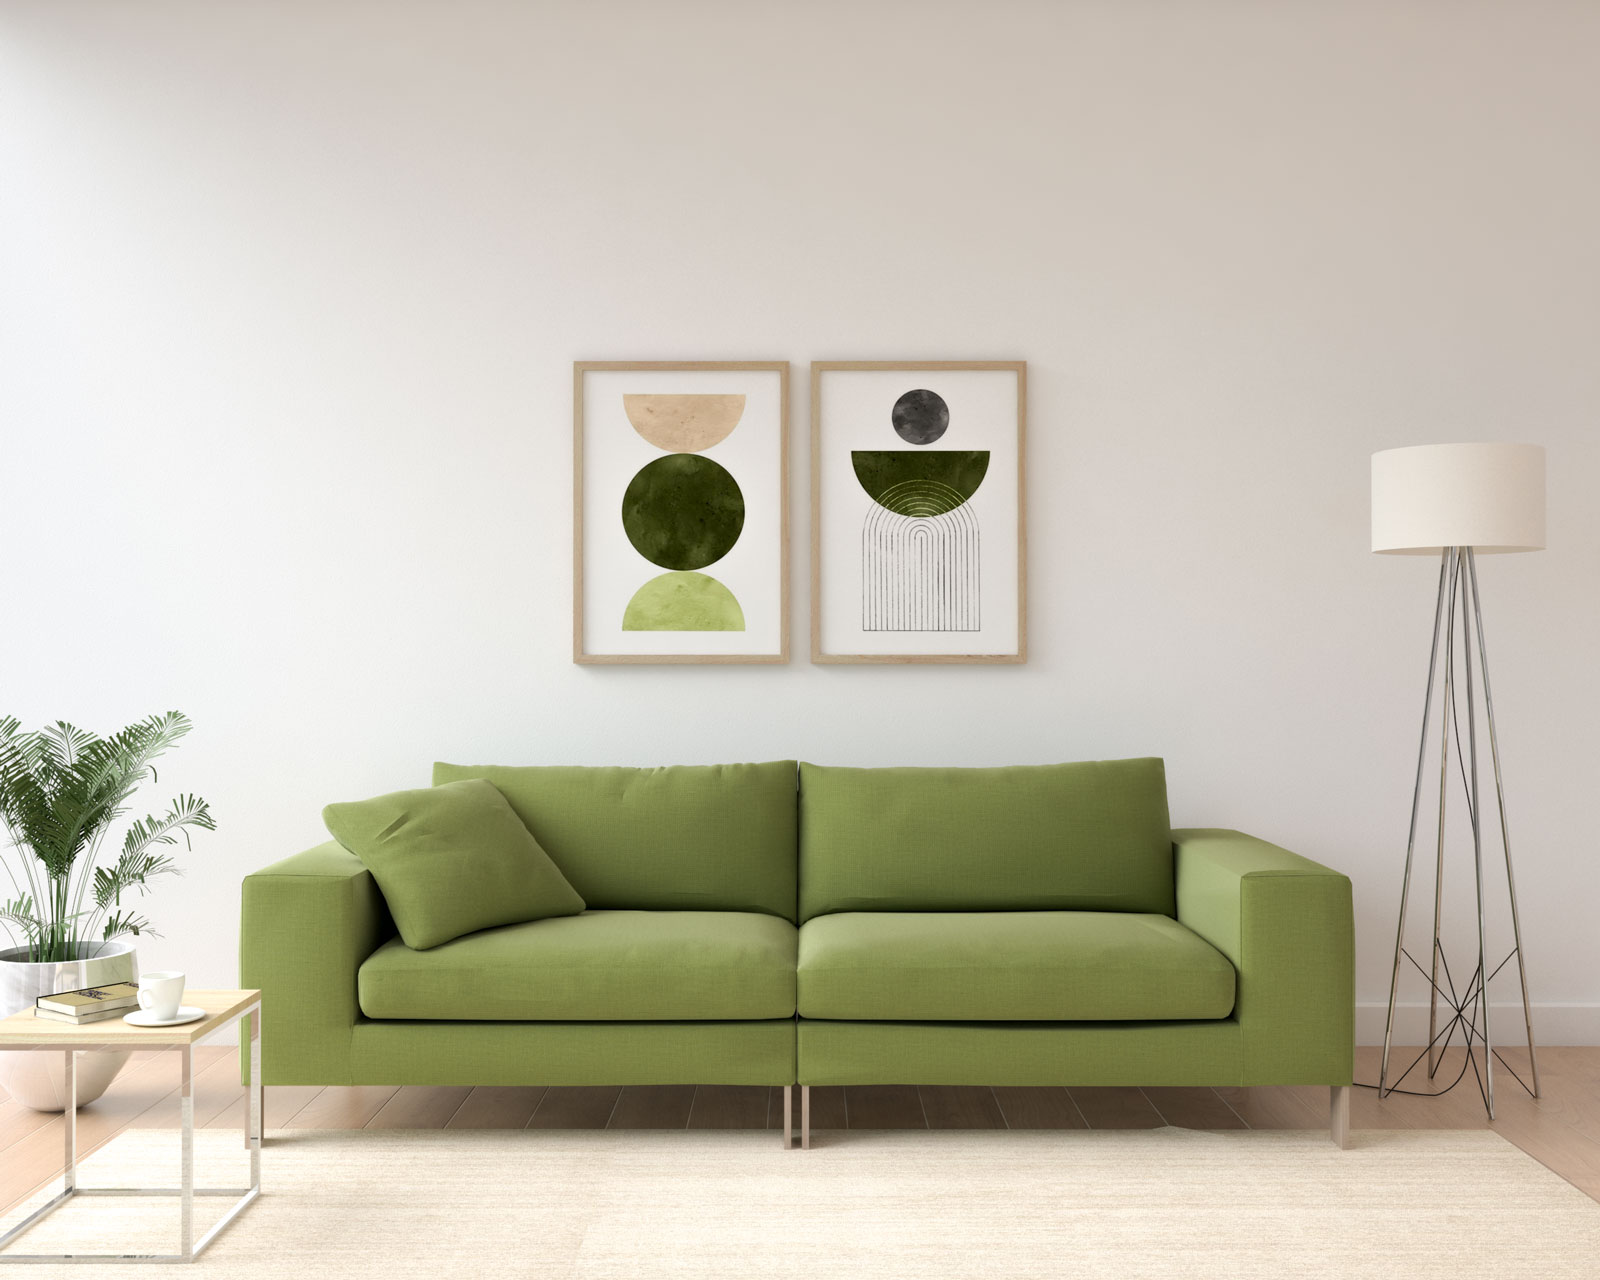 White wall with olive couch